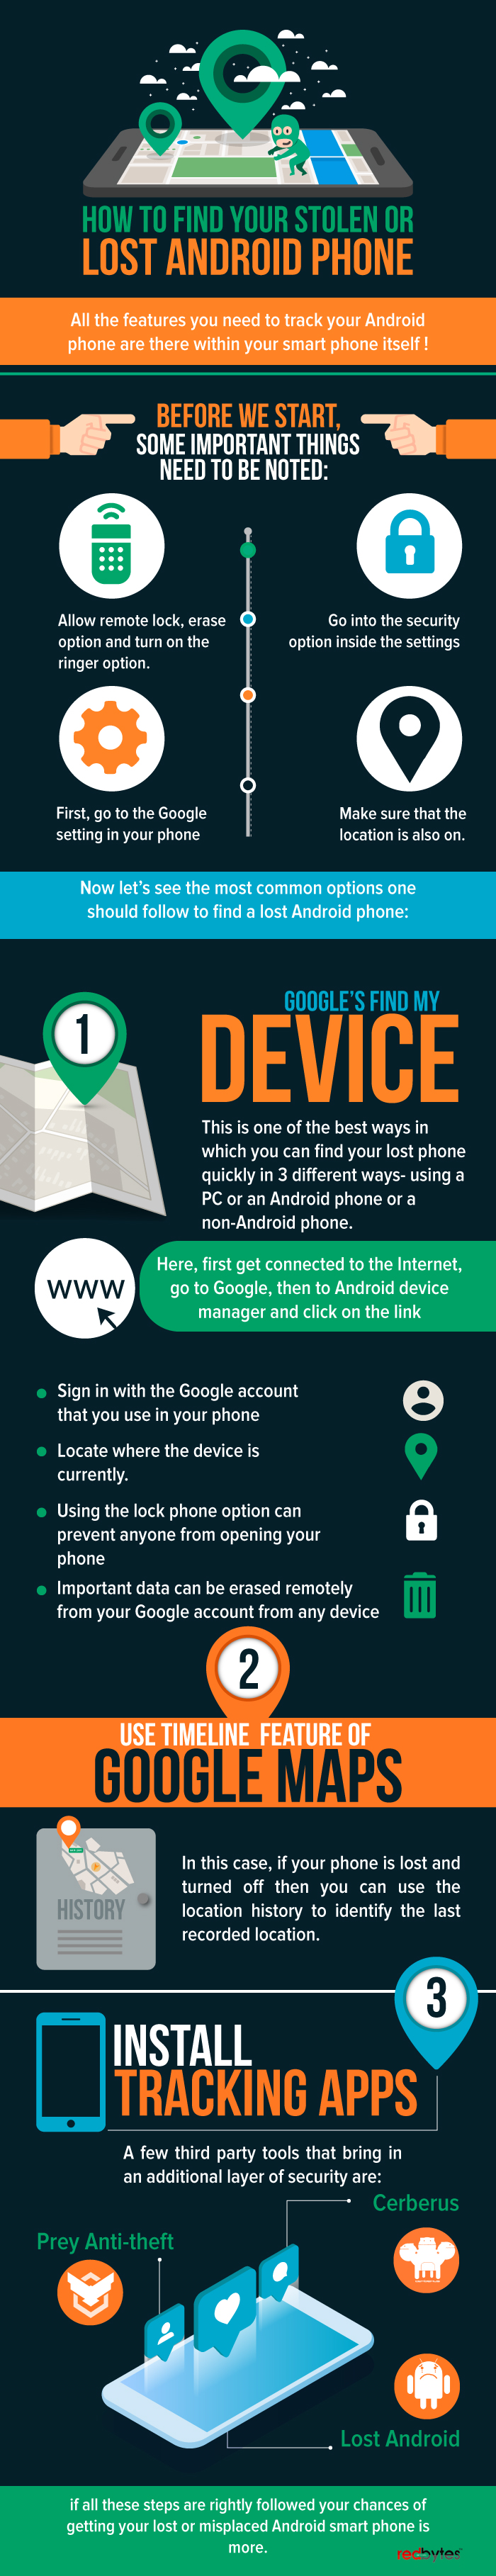 Tracking Your Stolen or Lost Android Phone: 3 Foolproof Methods - Infographic